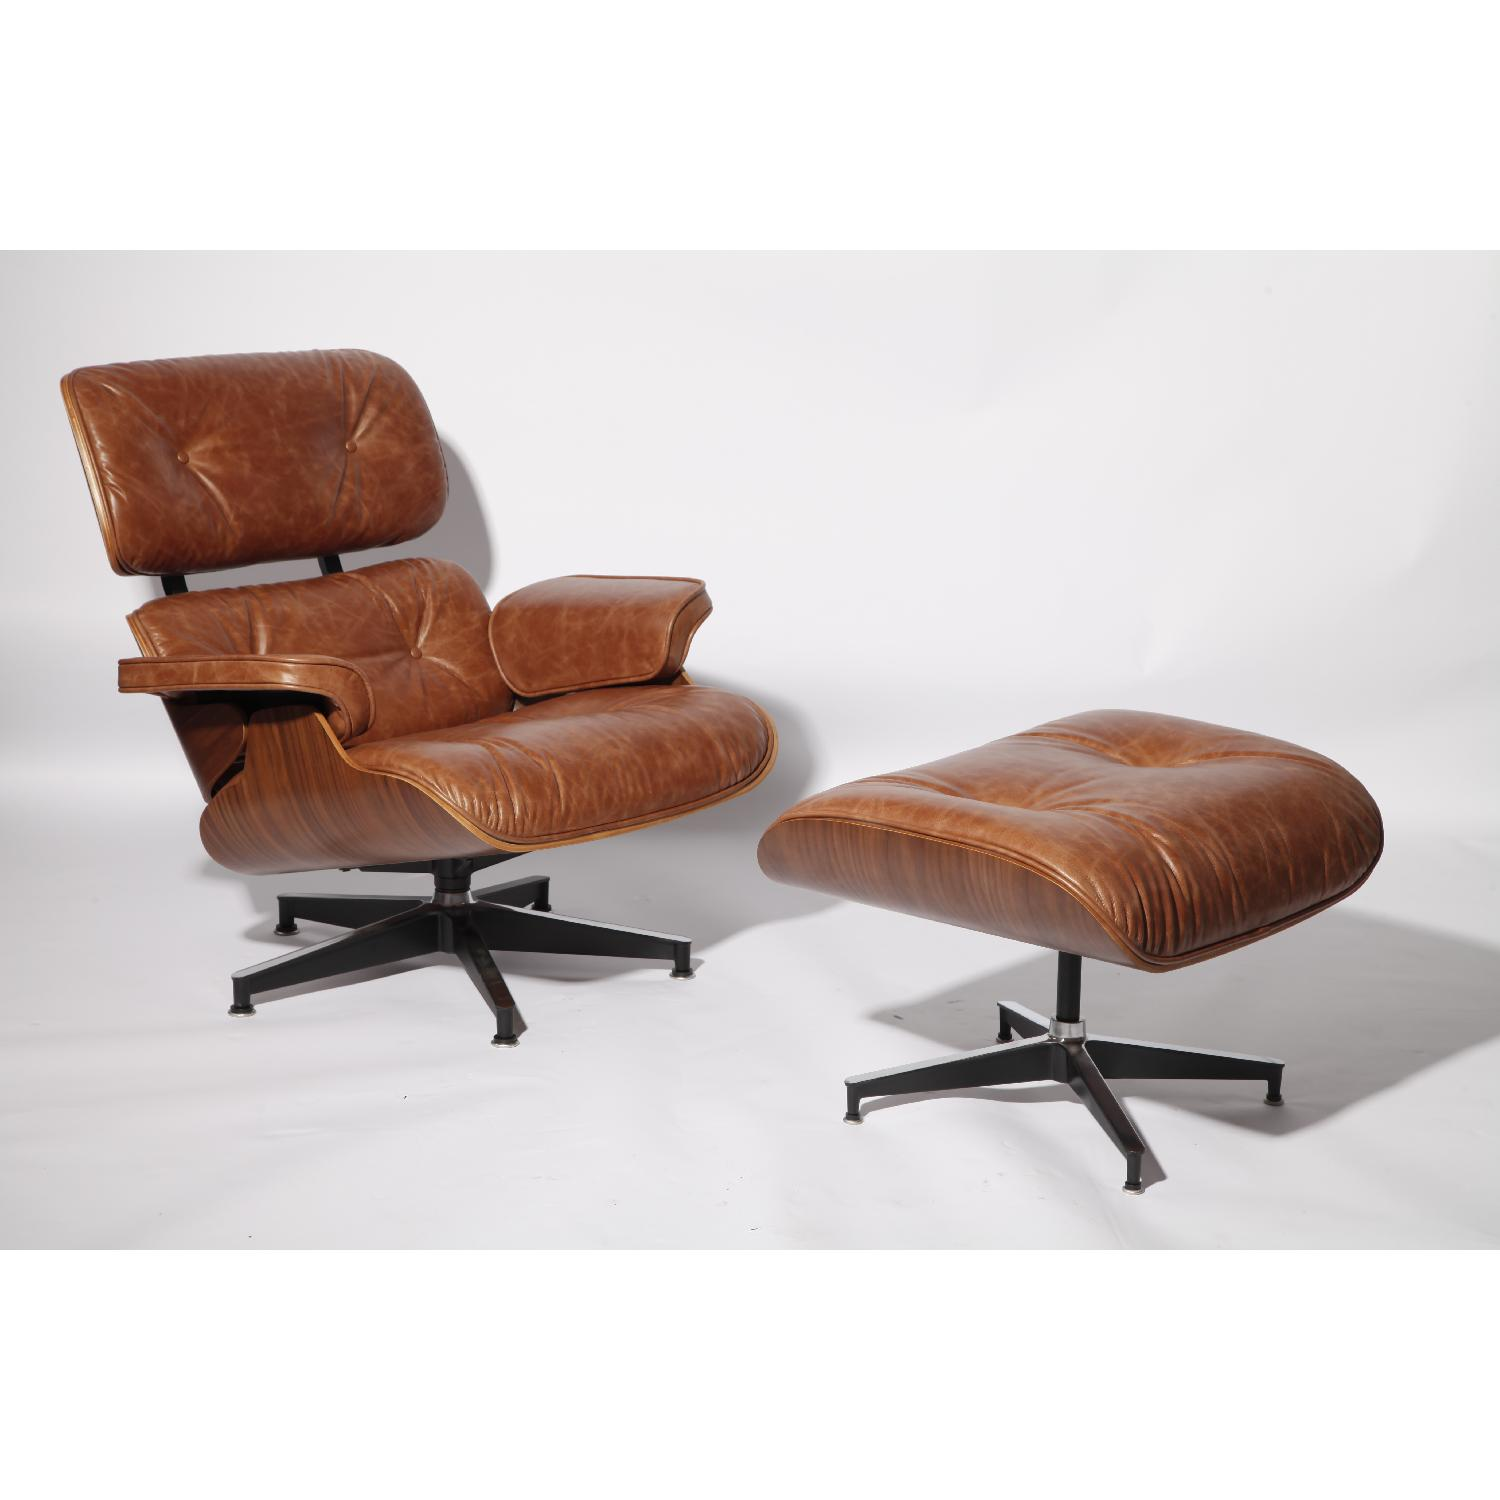 eames sofa compact knockoff george nelson marshmallow classic lounge chair replica aptdeco